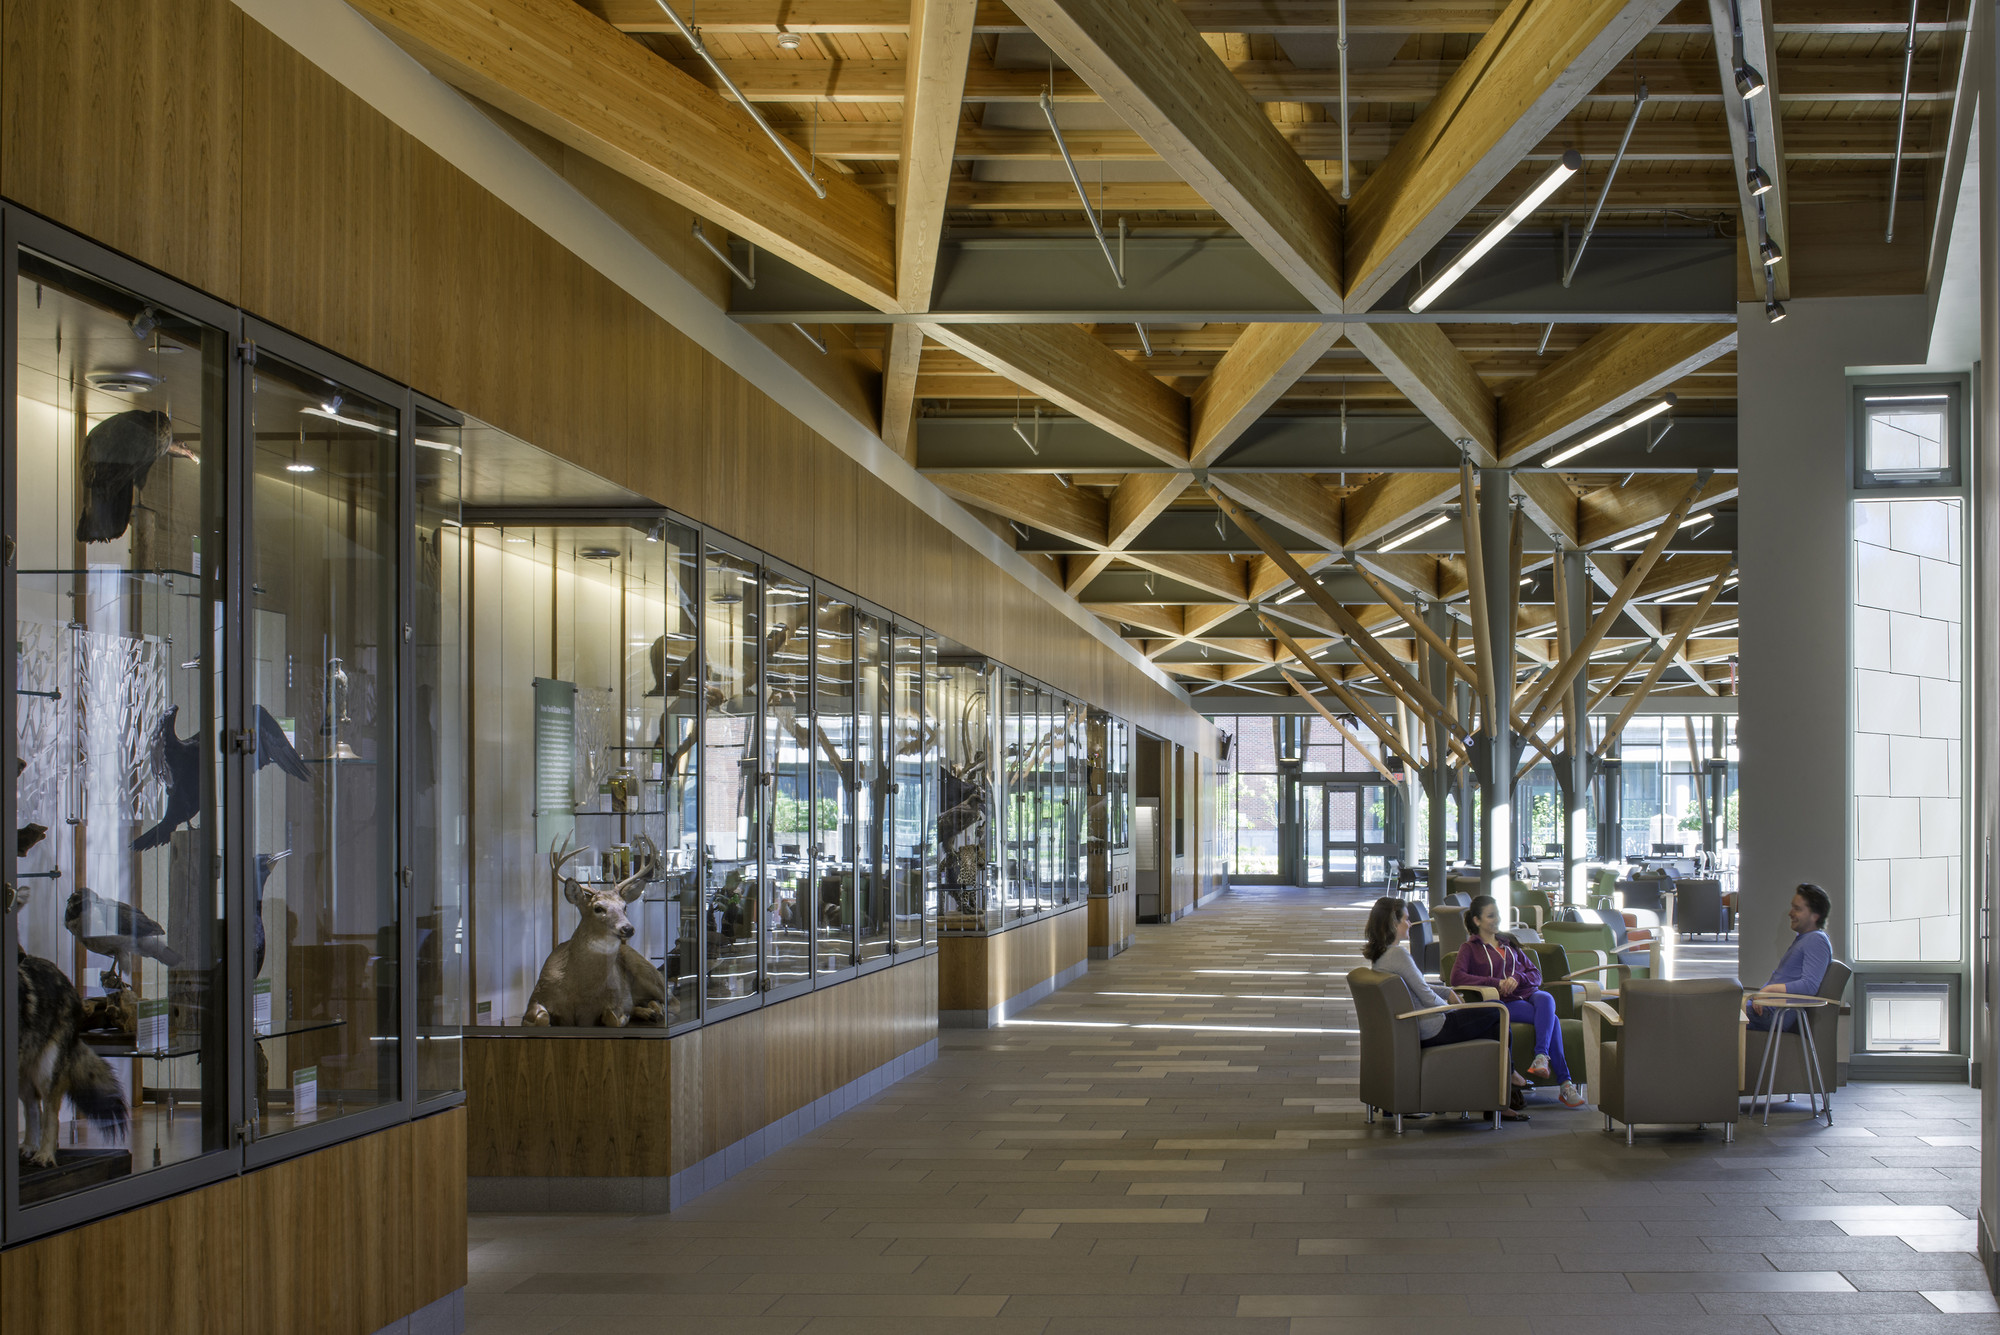 Gateway Center - SUNY-ESF College of Environmental Science & Forestry; Syracuse, NY / Architerra © David Lamb